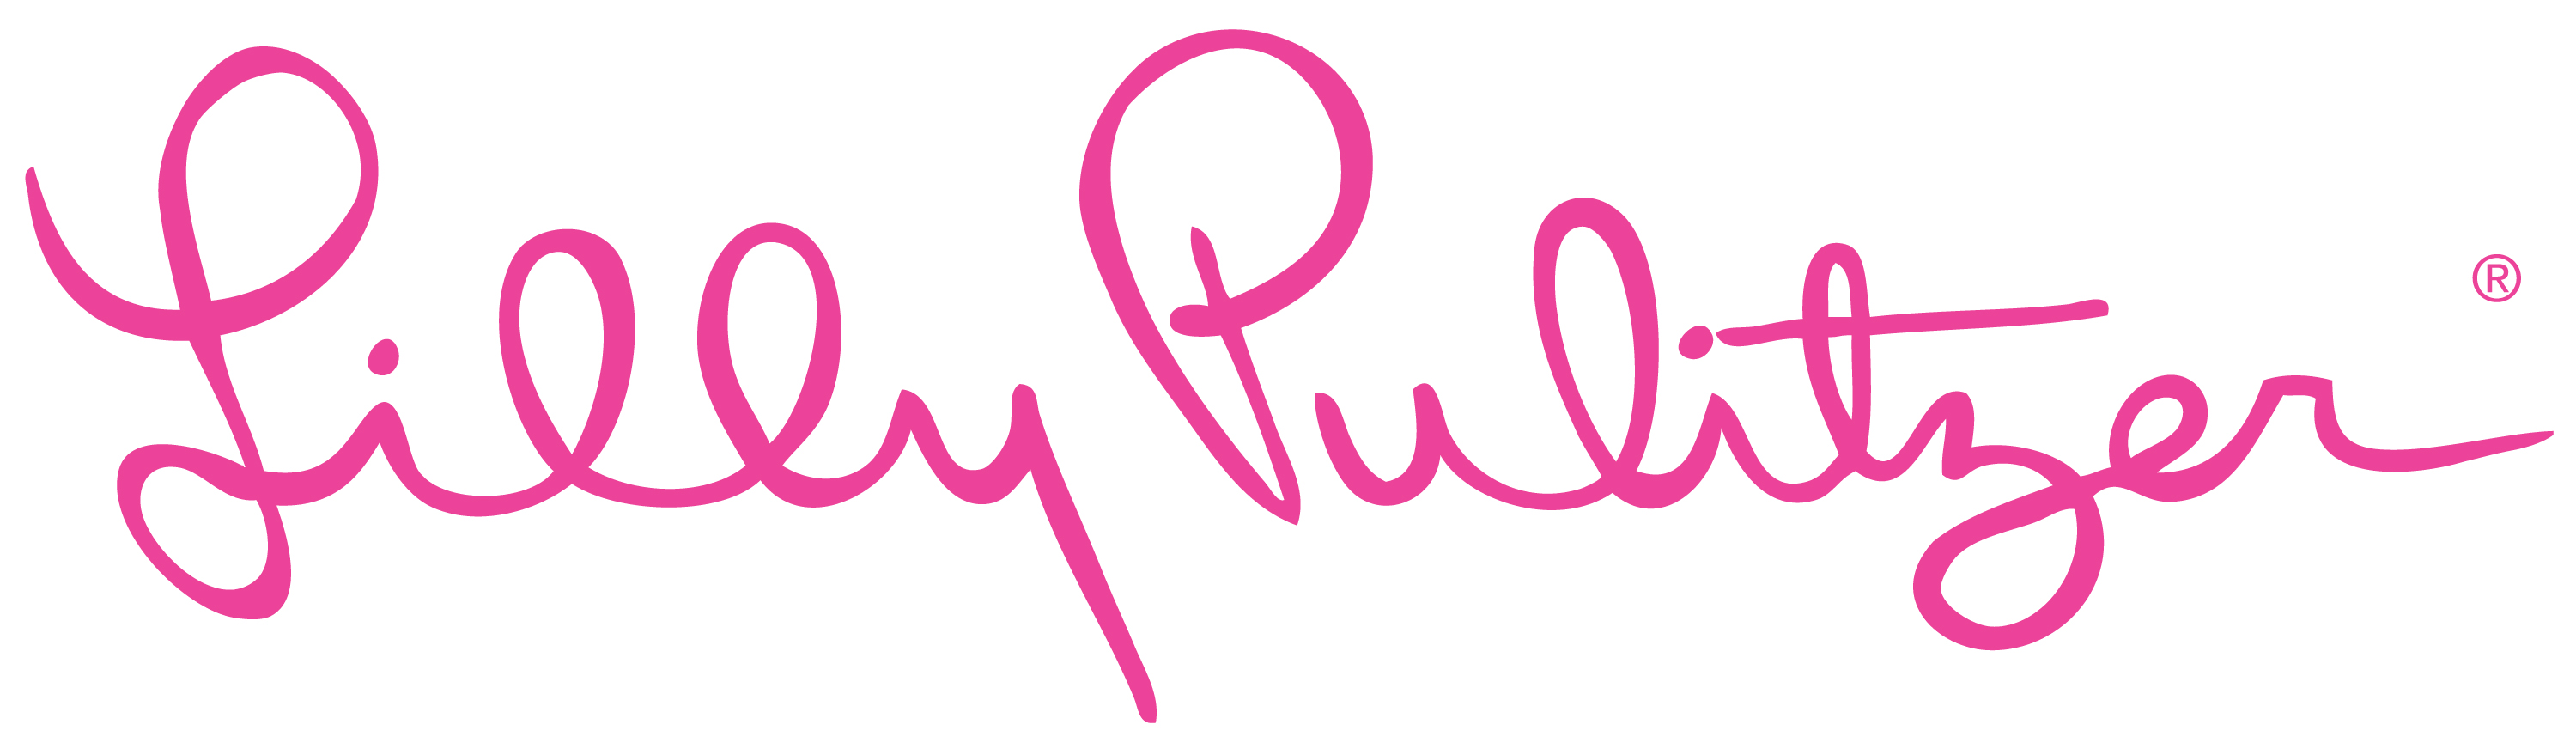 Lilly Pulitzer logo Jan 2017